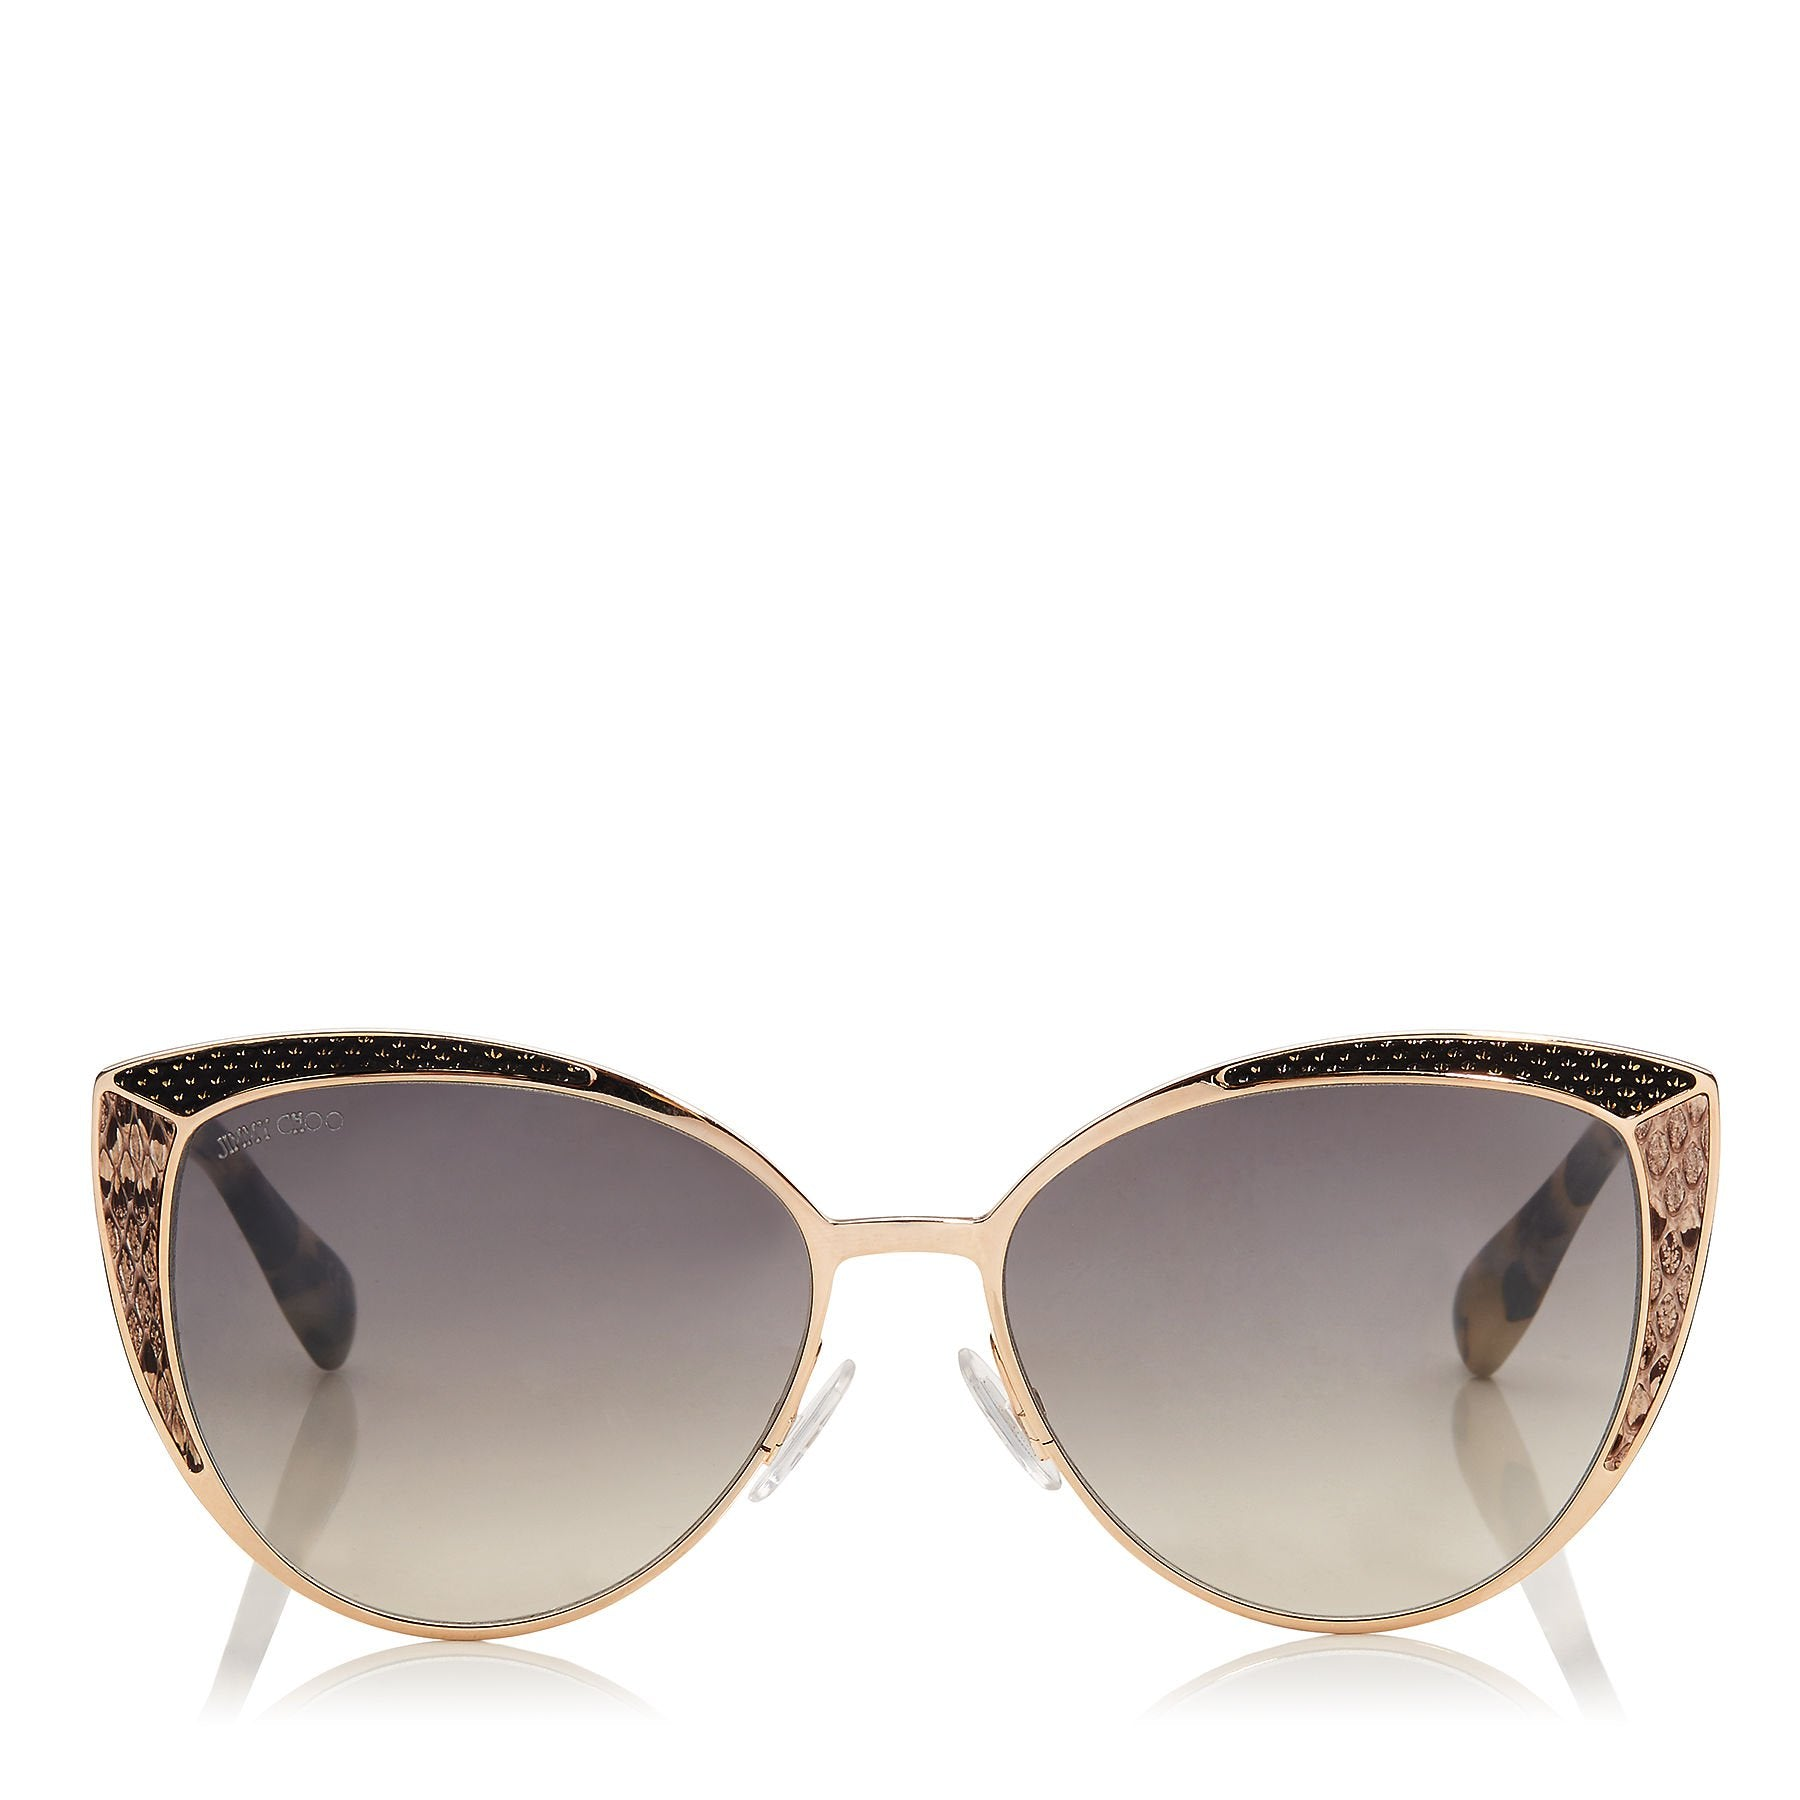 abe13c68dd6 DOMIS56EPSW  JIMMY CHOO Domi Metal Framed Cat Eye Sunglasses with Snakeskin  Leather Detail ITEM NO.